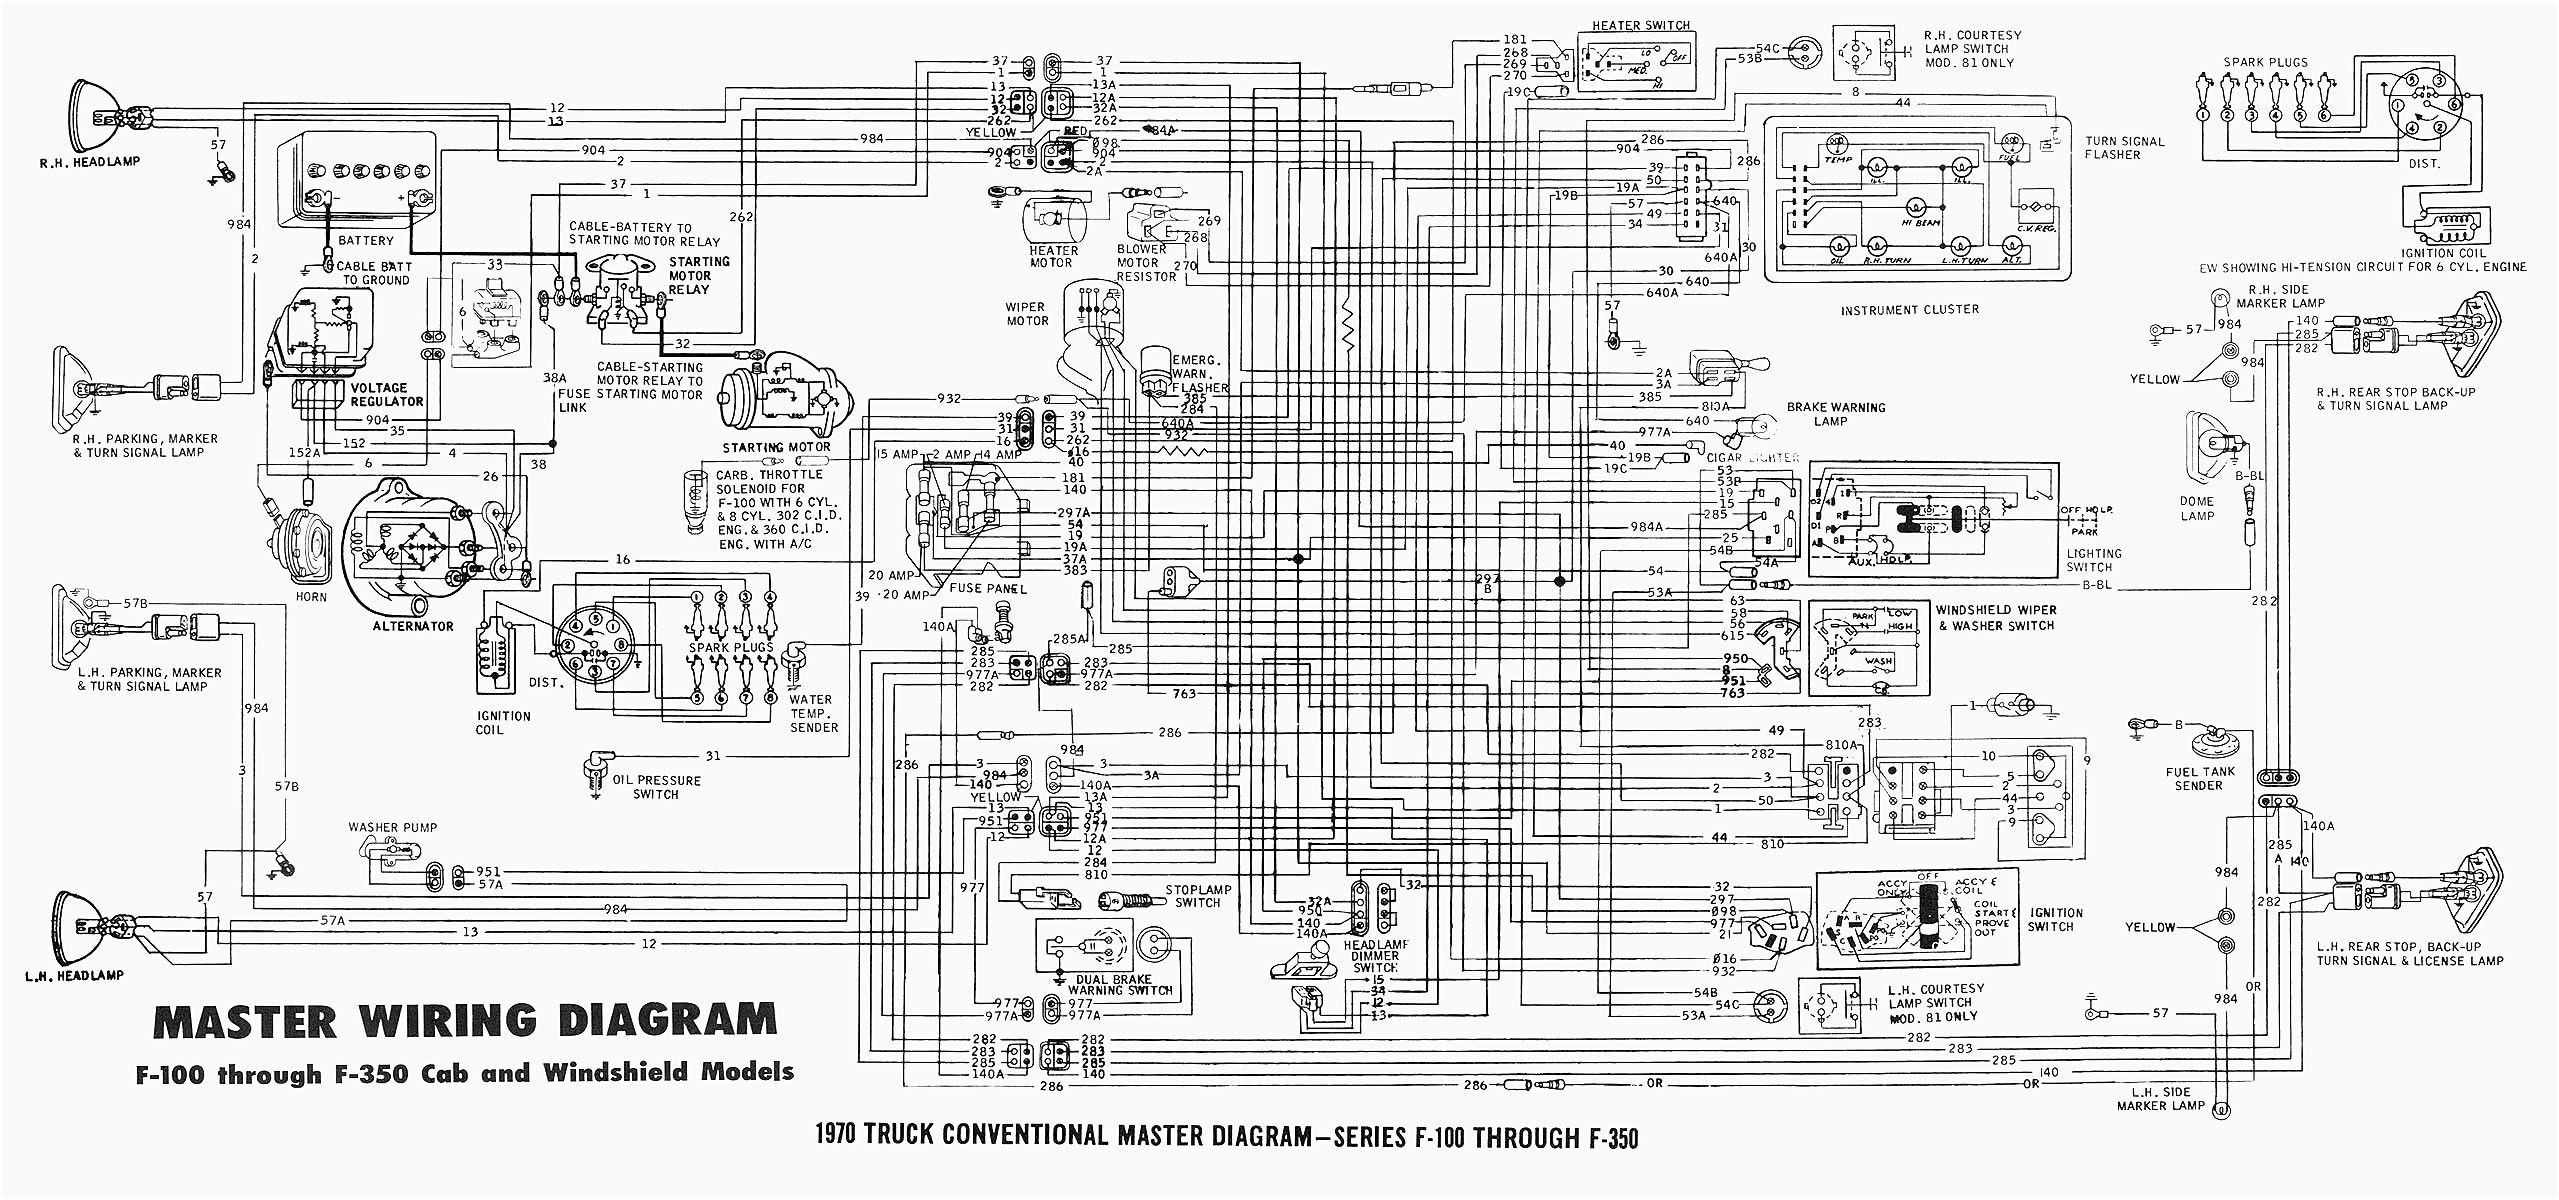 1965 Ford Thunderbird Turn Signal Wiring Diagram